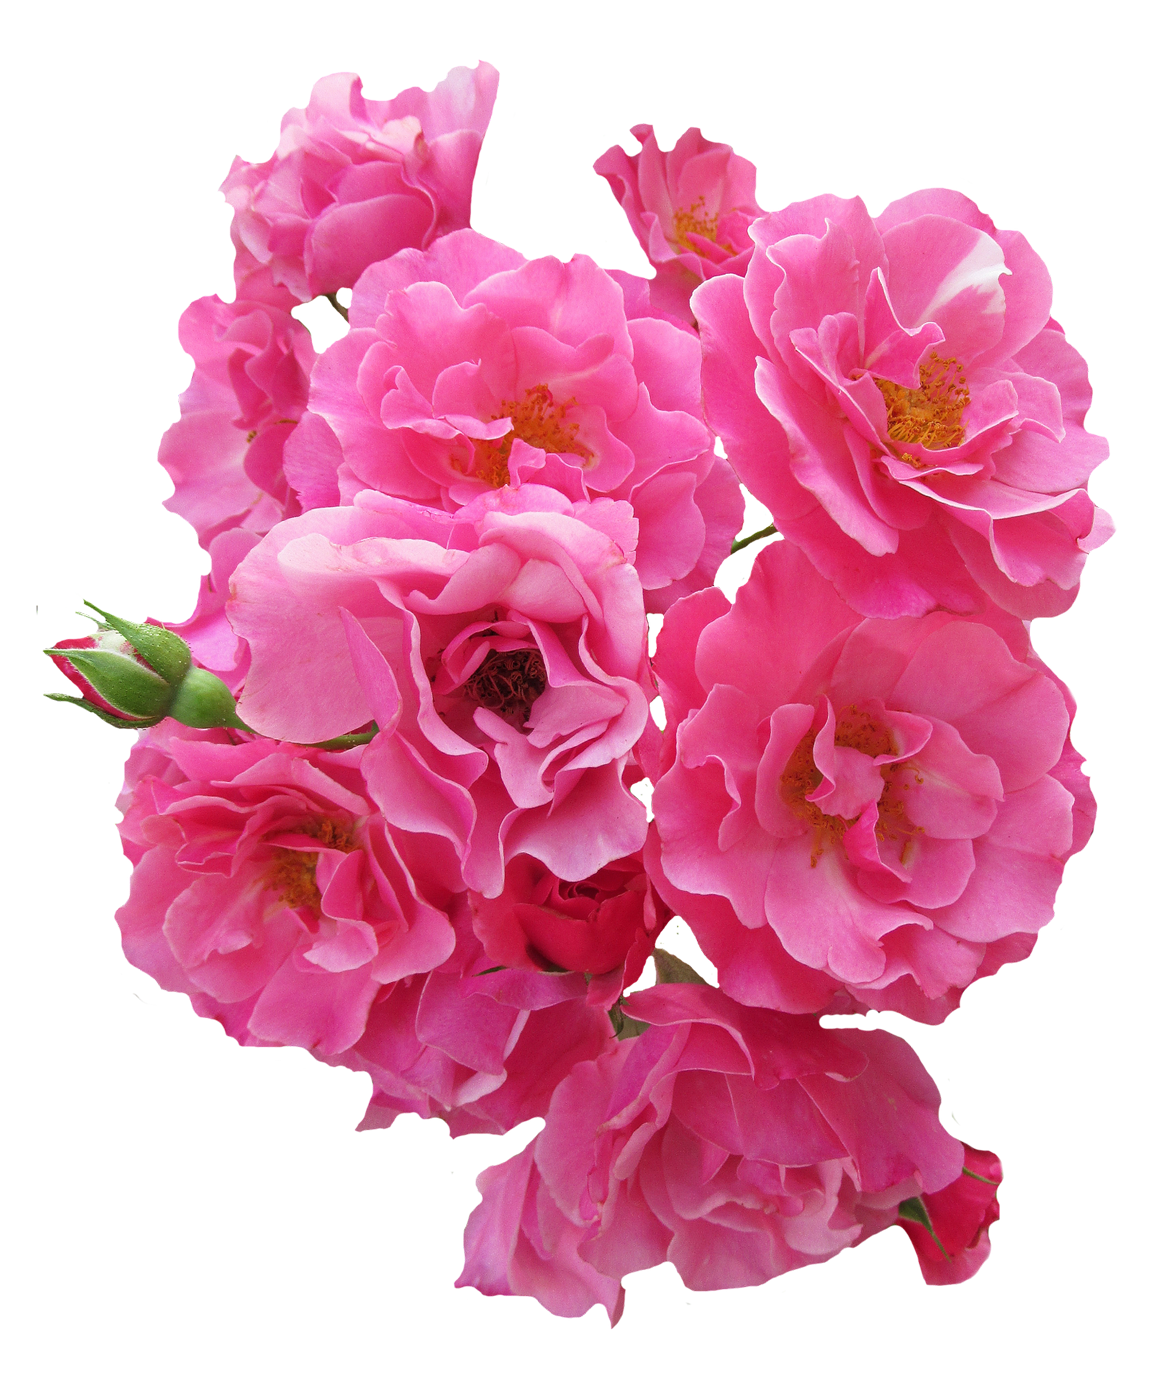 Pink Flower PNG - 132031